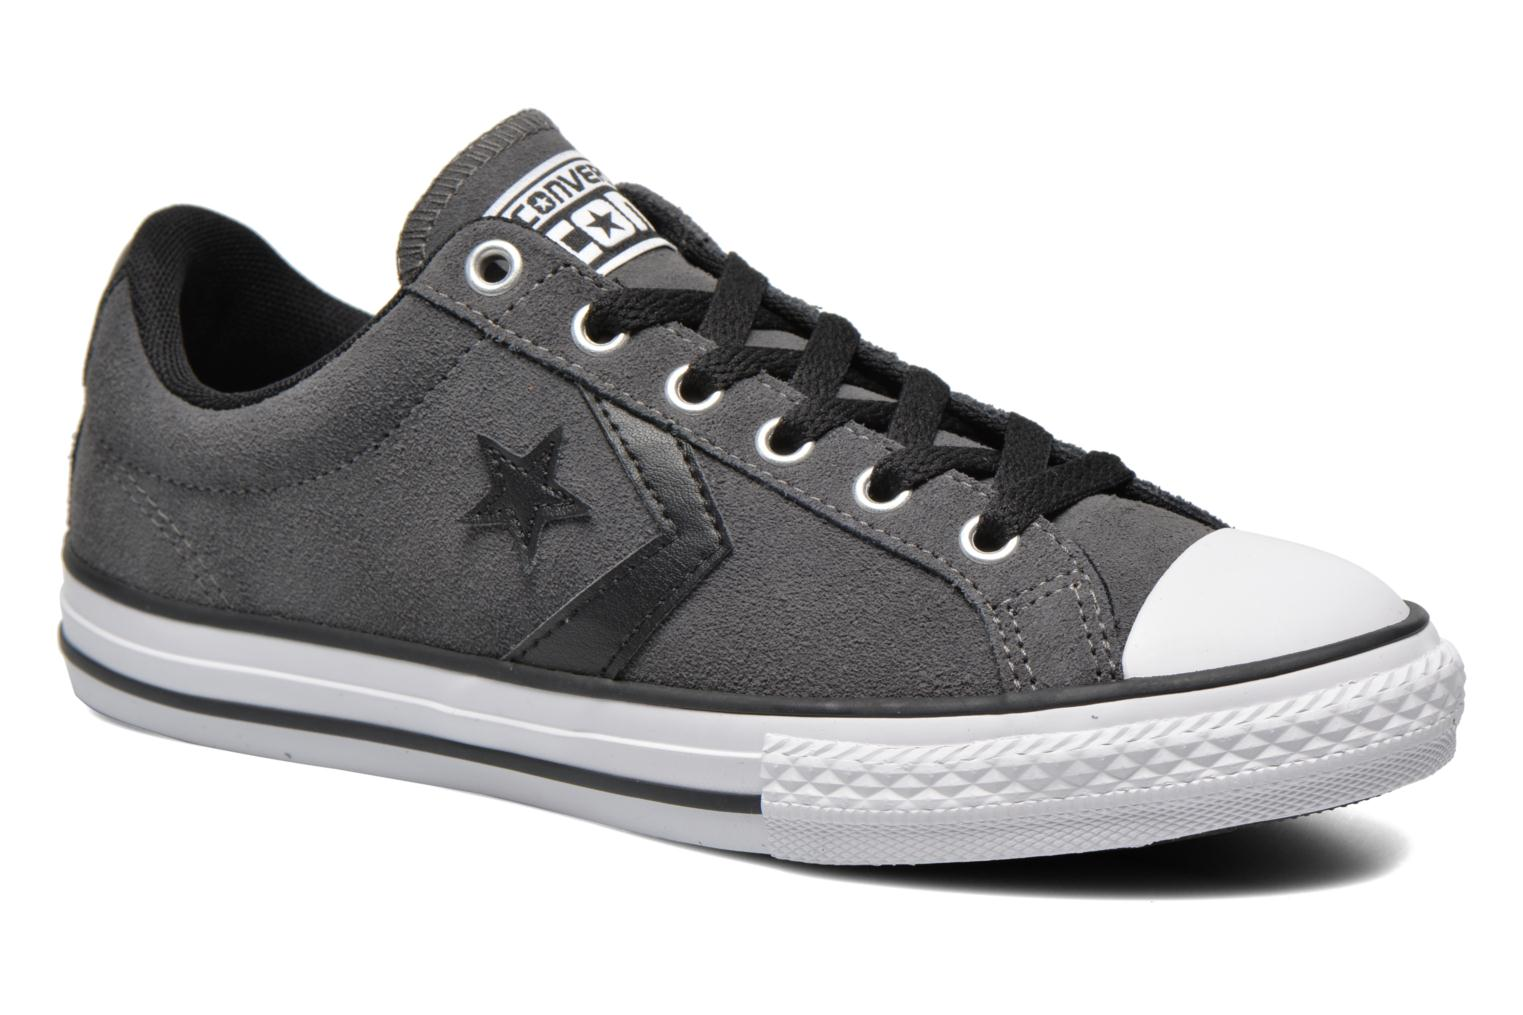 converse star player ev lacet ox